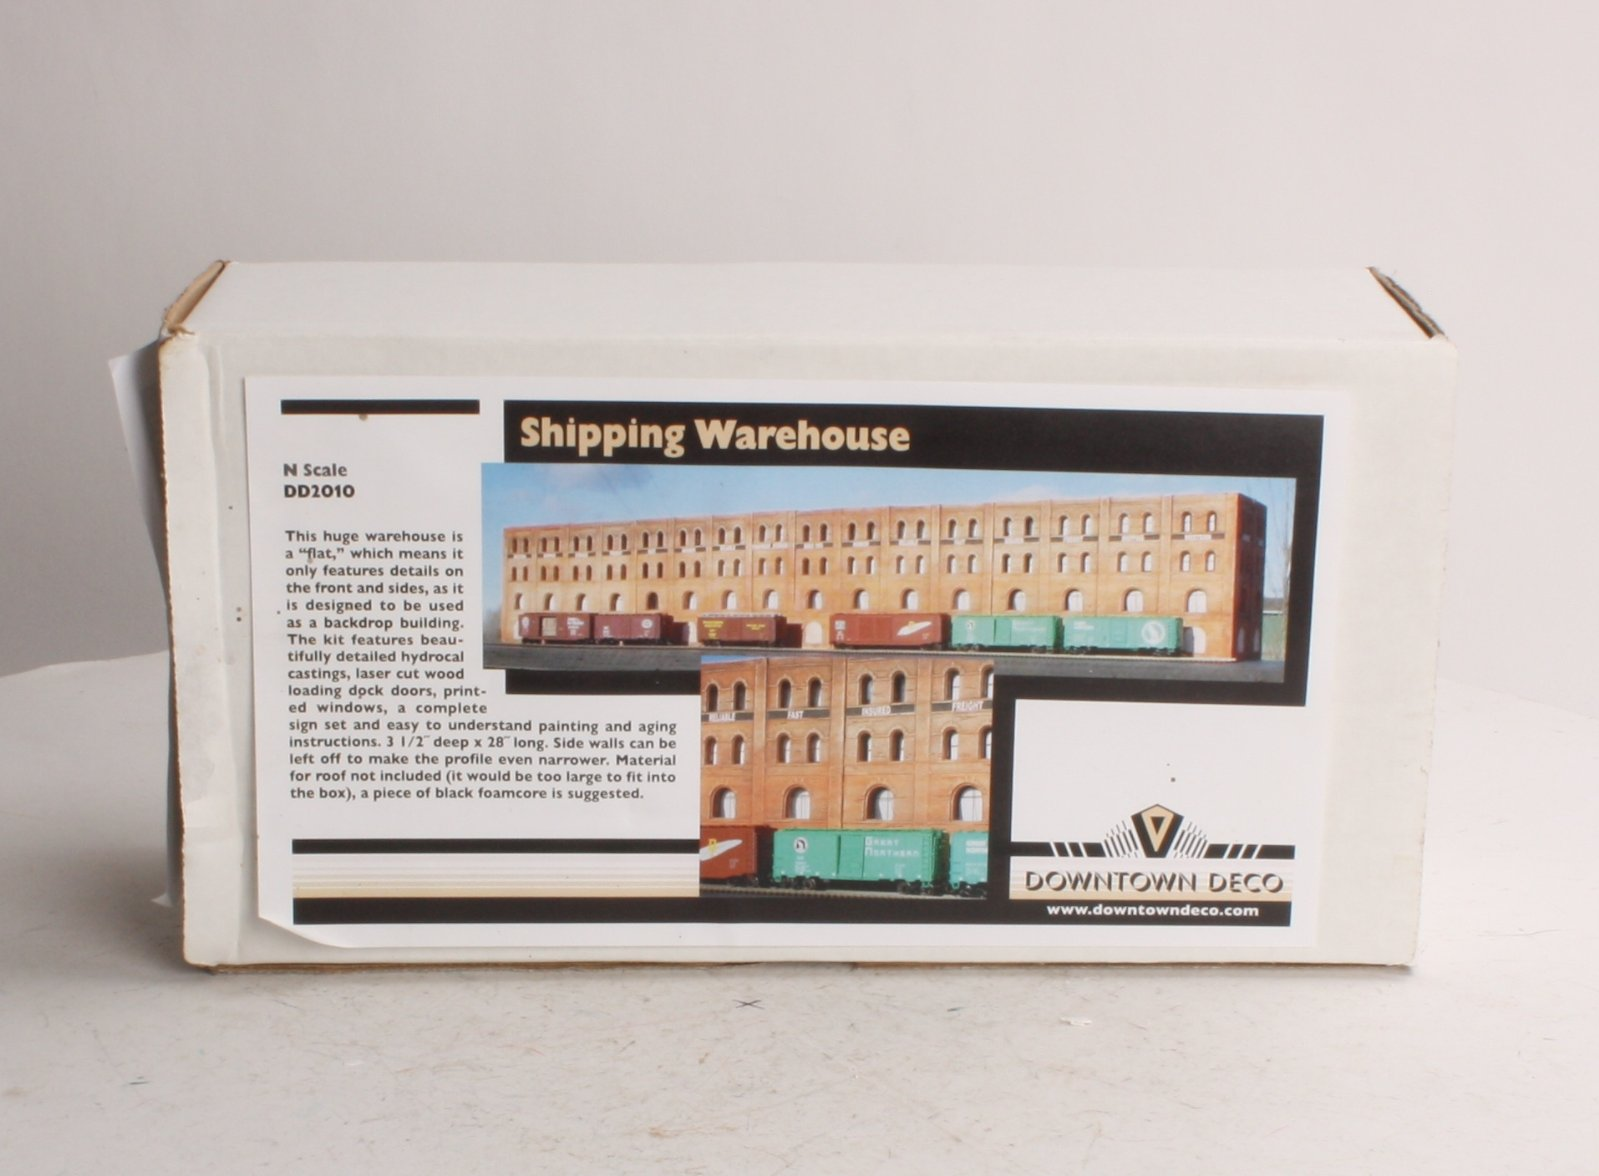 "Downtown Deco 2010 Shipping Warehouse Flat This is Downtown Deco 2010 Shipping Warehouse Flat. Based on our old ""Comet Manufacturing,""this kit has been revamped into a background flat perfect for a long string of cars. This kit has great brick detail, a new set of signs, easy-to-install printed windows and complete painting and aging instructions.Its key features are:Cast Hydrocal plaster walls, plastic door & windowsFull color paper signs and awningsEasy to understand step by step instructionsDimensions: 3-1/2 x 28 (8.9cm x 71.1cm)Condition: Factory New (C-9All original; unused; factory rubs and evidence of handling, shipping and factory test run.Standards for all toy train related accessory items apply to the visual appearance of the item and do not consider the operating functionality of the equipment.Condition and Grading Standards are subjective, at best, and are intended to act as a guide. )Operational Status: FunctionalThis item is brand new from the factory.Original Box: Yes (P-9May have store stamps and price tags. Has inner liners.)Manufacturer: Downtown DecoModel Number: 2010MSRP: $59.95Scale/Era: N ScaleModel Type: BuildingsAvailability: Ships in 1 Business Day!The Trainz SKU for this item is P11476089. Track: 11476089 - No Location Assigned - 001 - TrainzAuctionGroup00UNK - TDIDUNK"